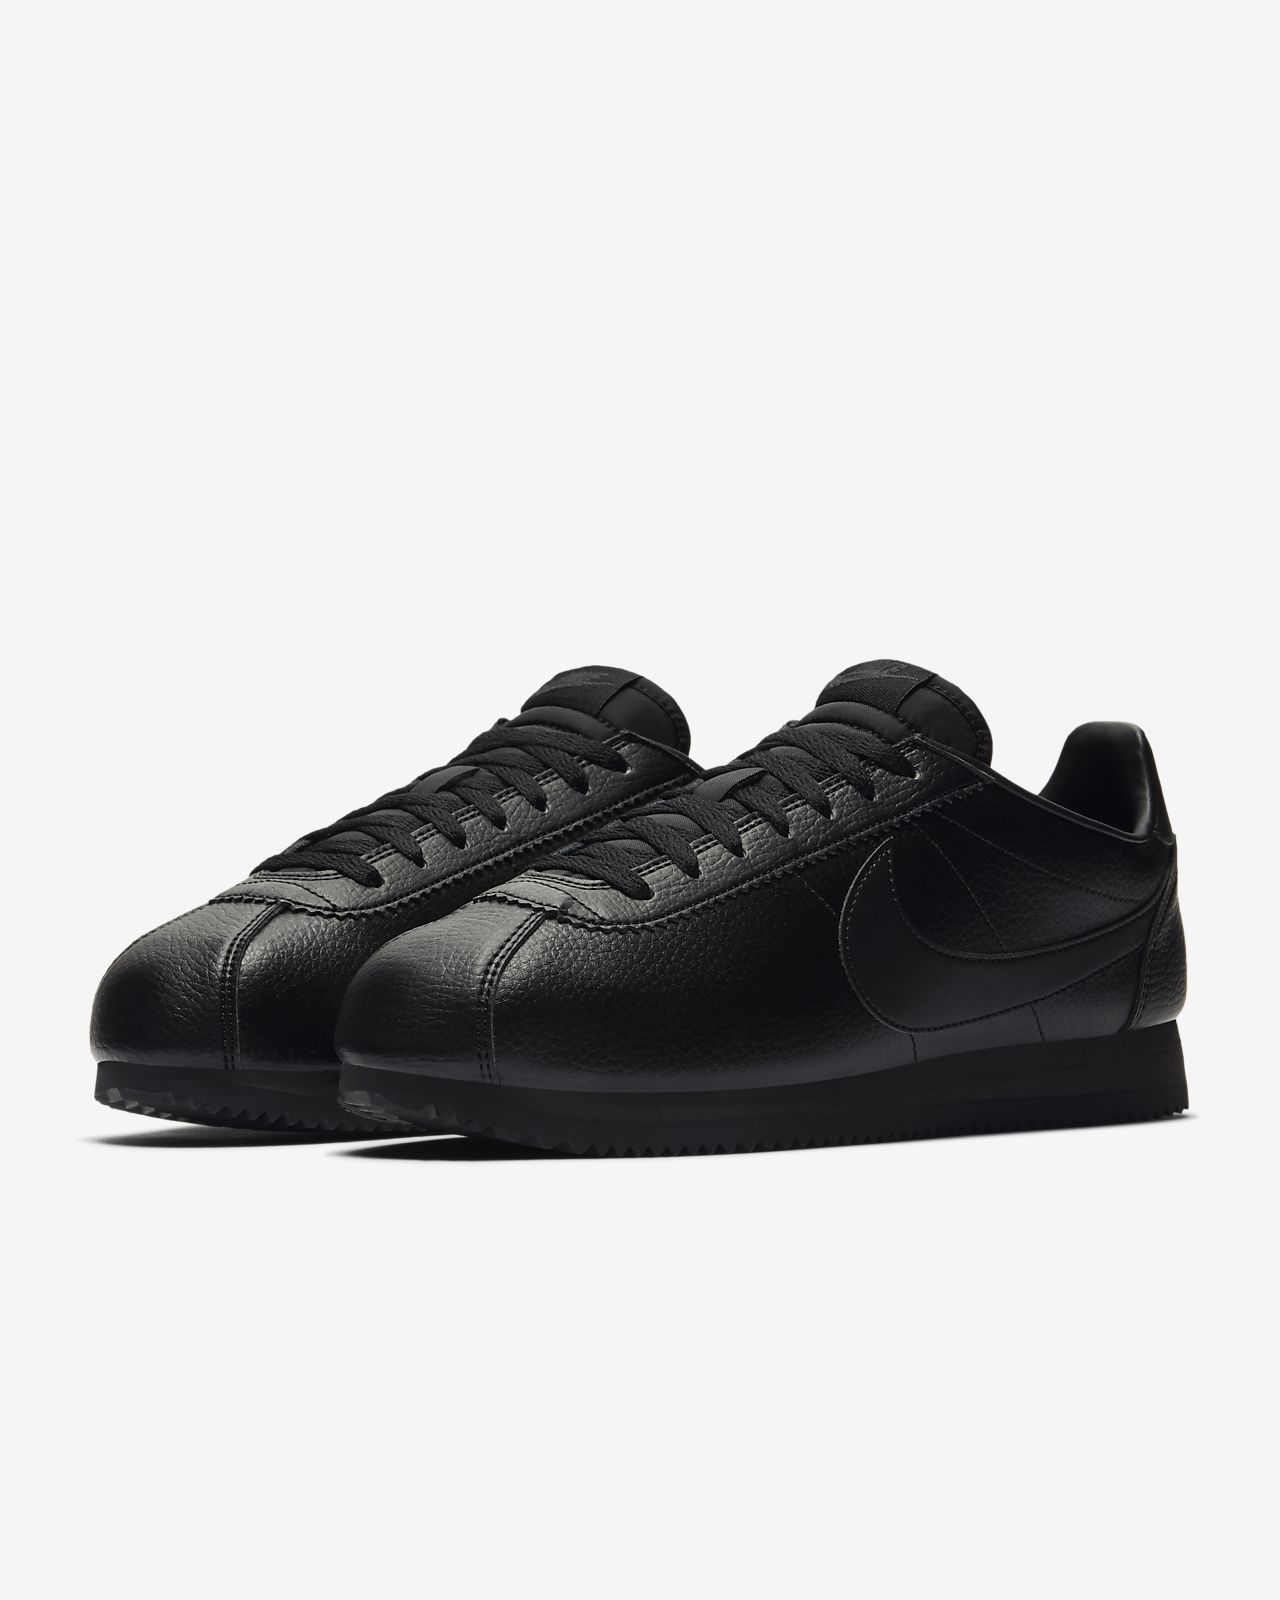 detailed look b81c6 f09d8 ... Nike Classic Cortez Men s Shoe